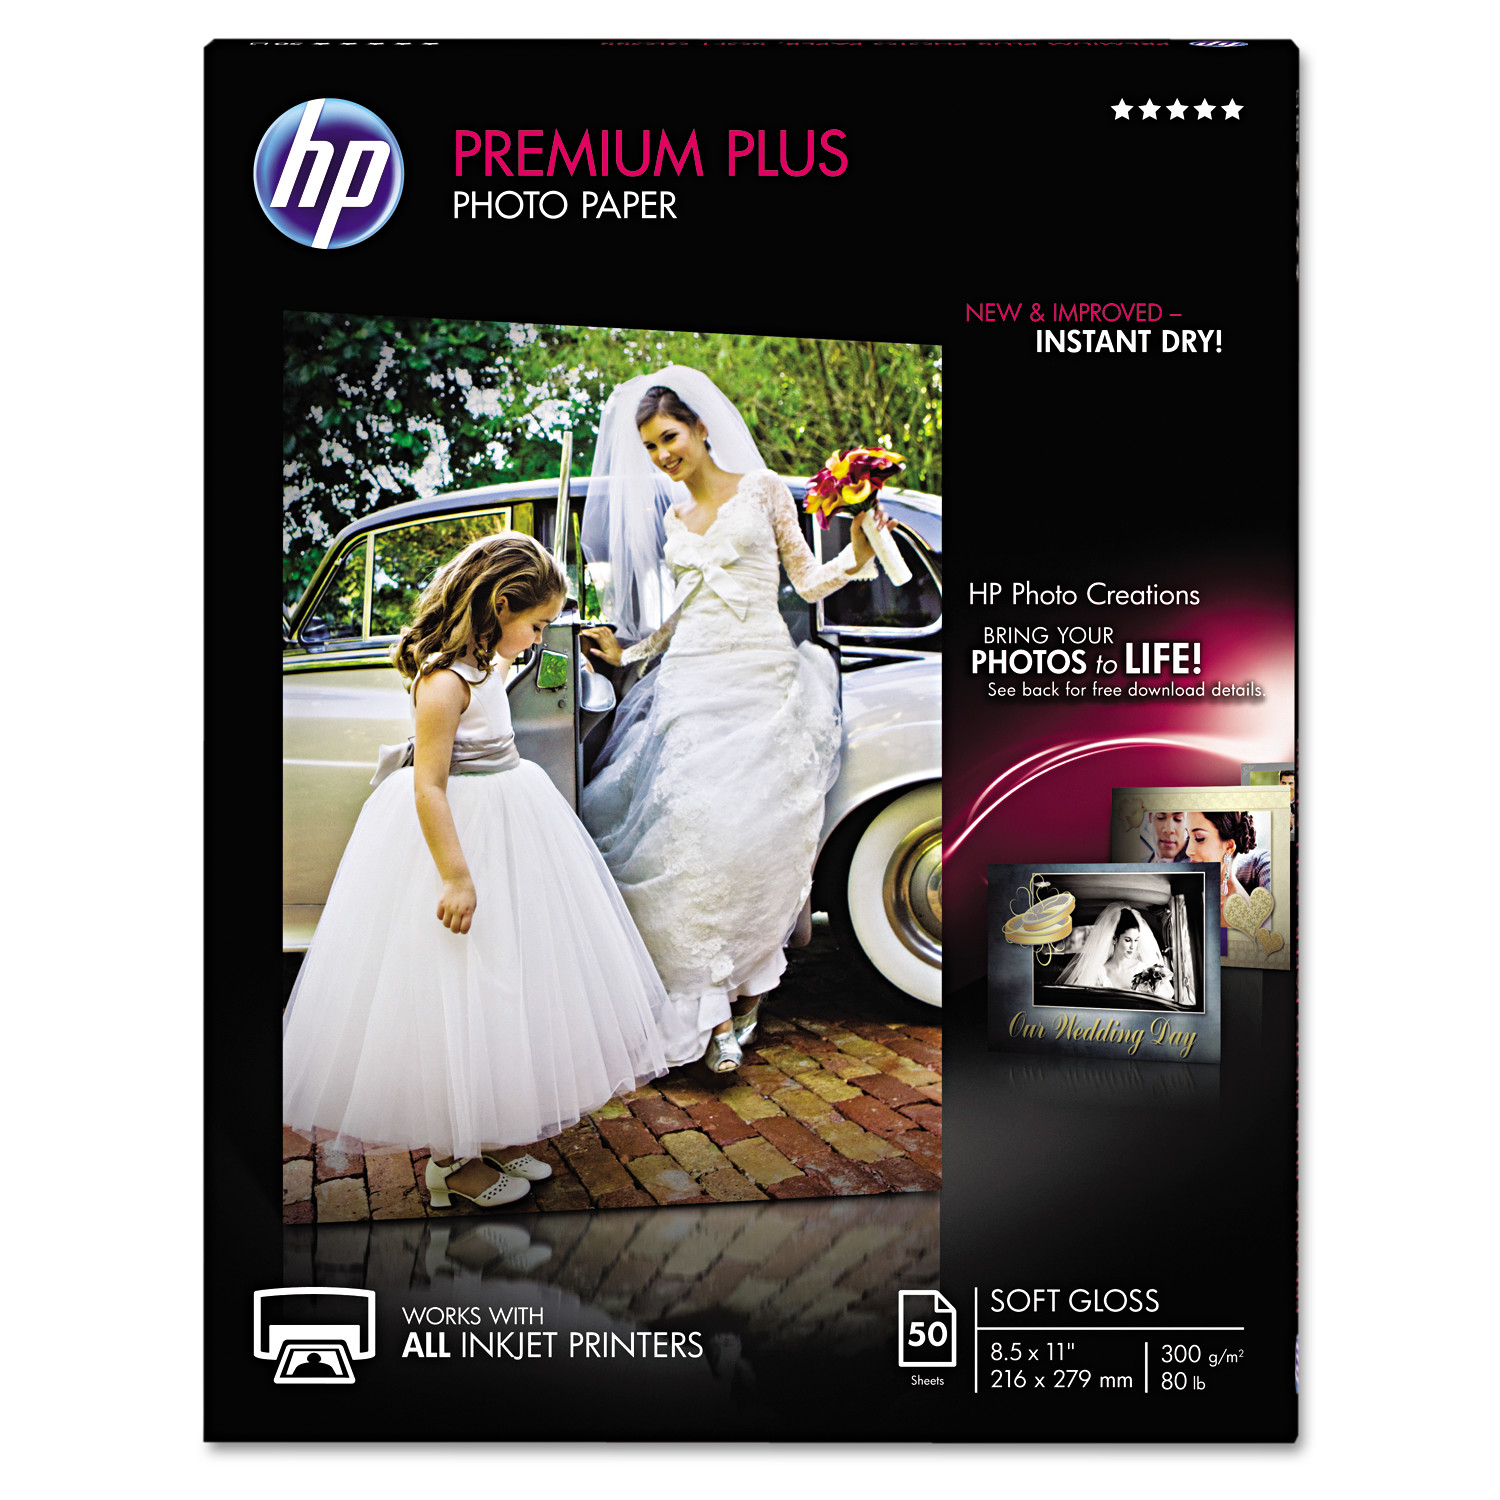 HP Premium Plus Photo Paper, 80 lbs., Soft-Gloss, 8-1/2 x 11, 50 Sheets/Pack -HEWCR667A